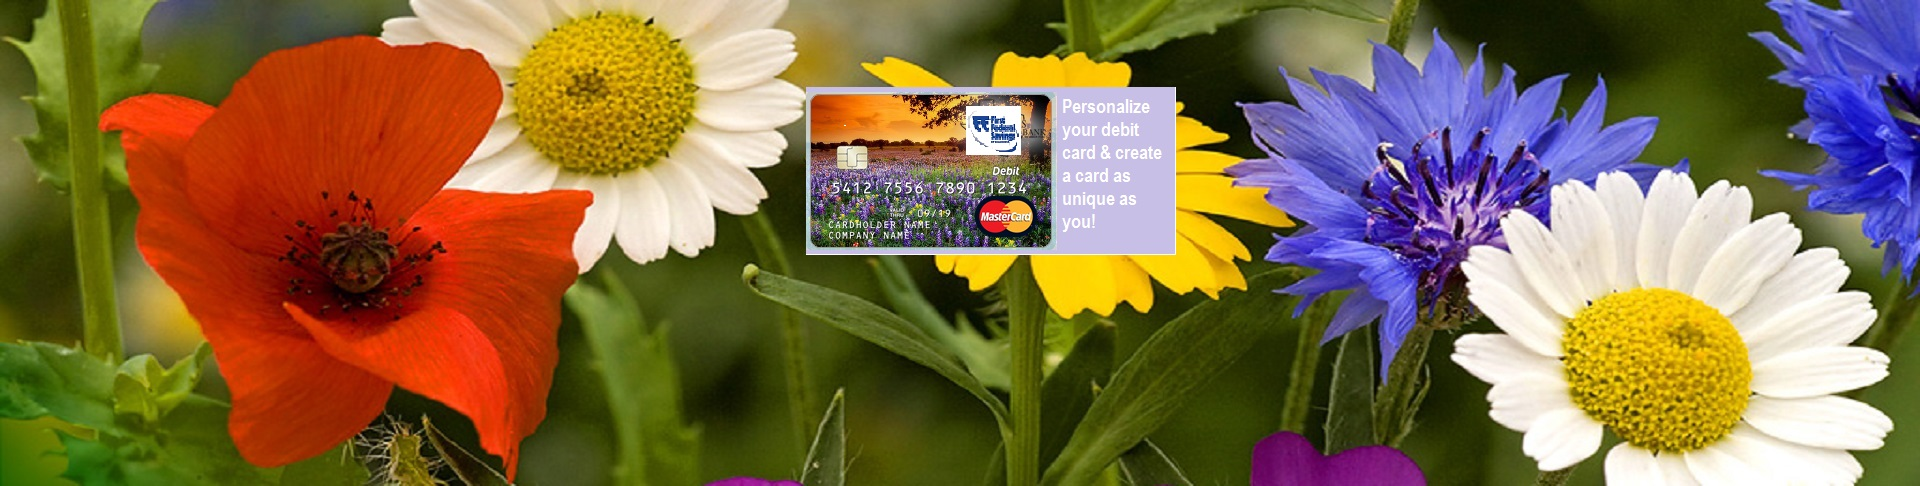 wildflower card create banner with card